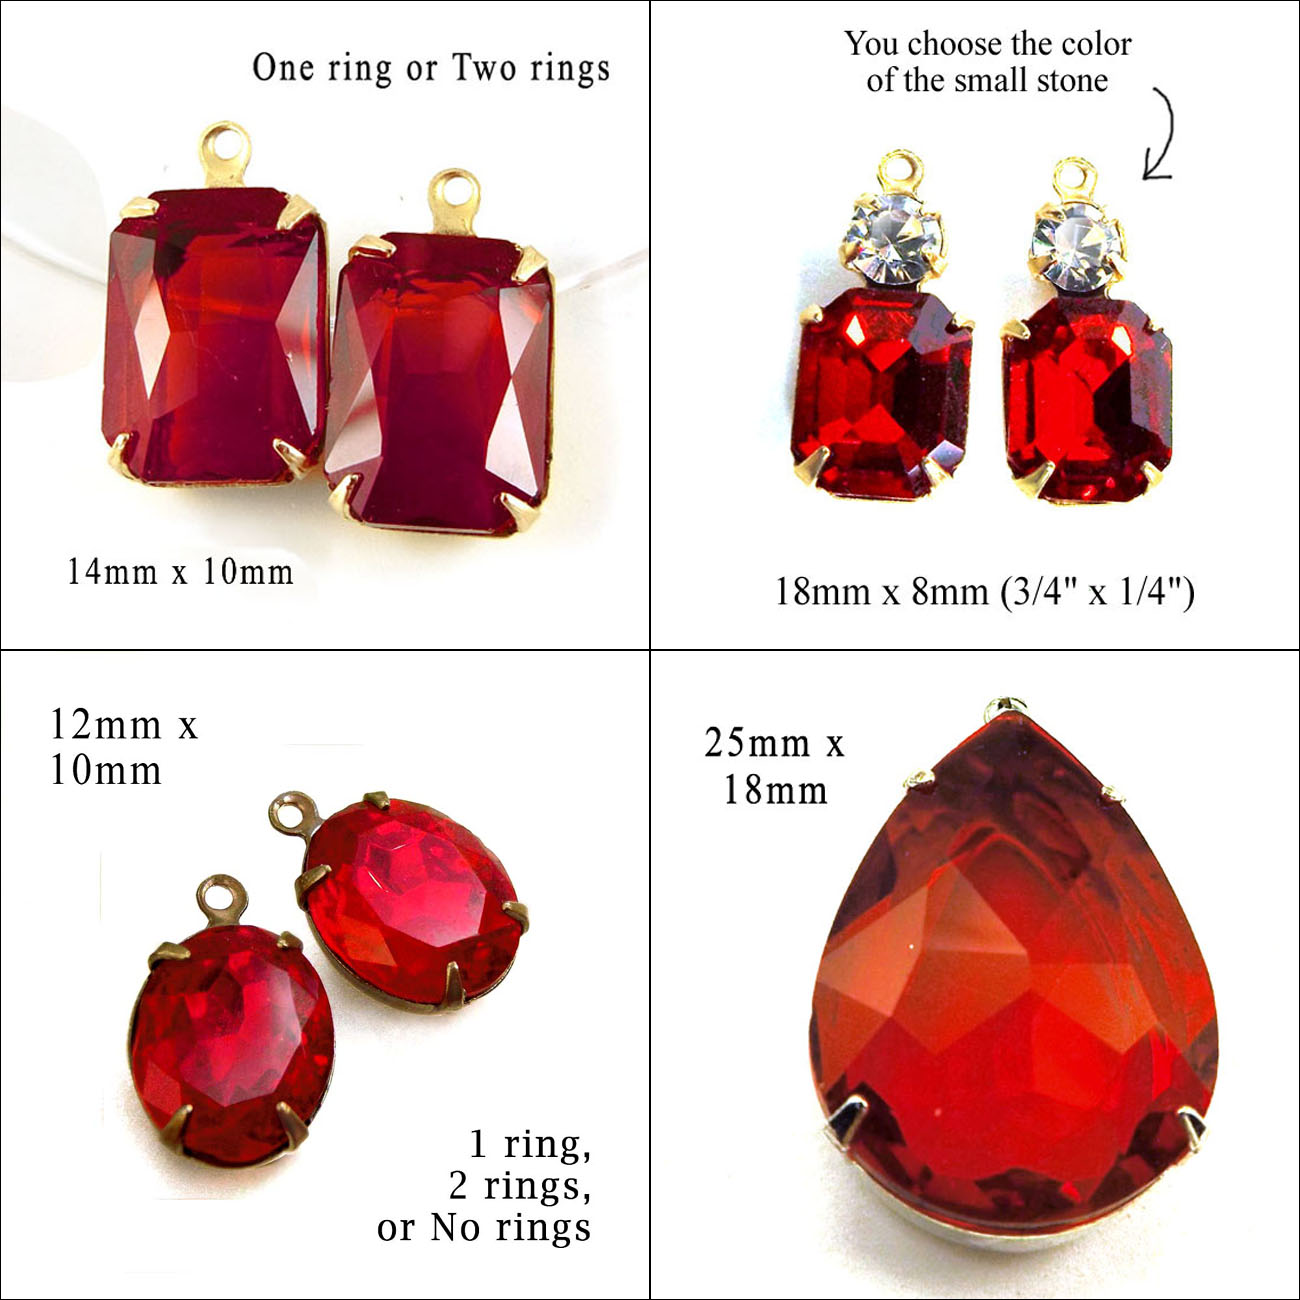 ruby red glass gems available at weekendjewelry1 on etsy